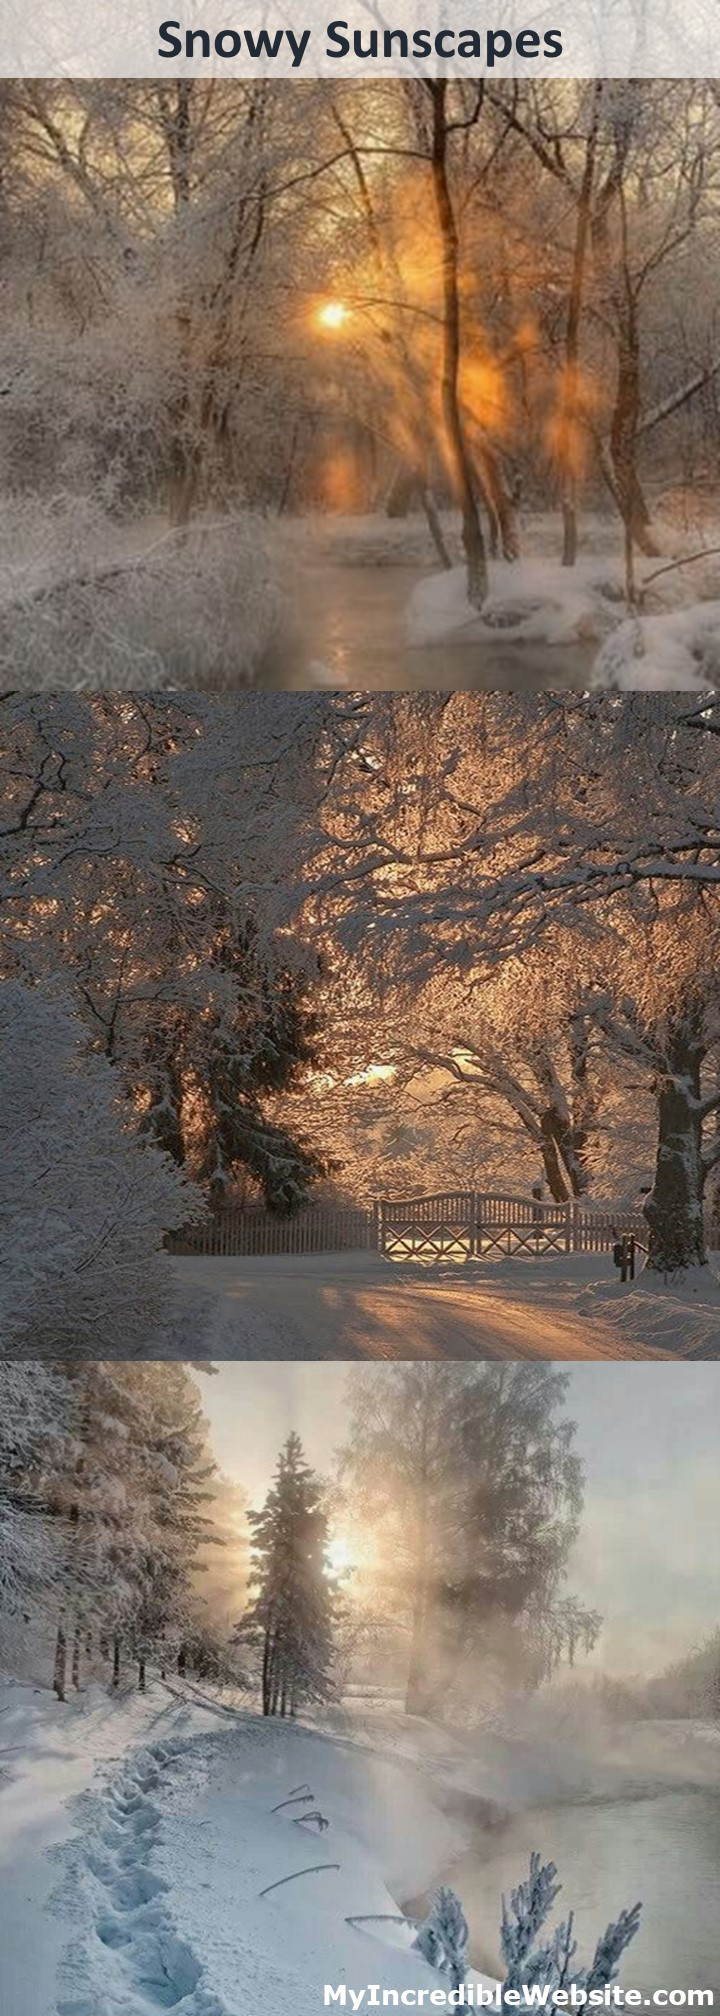 Snowy Sunscapes: Here are three beautiful snowy sunscapes I recently discovered on Pinterest. I wanted to share them with you. #winter #snow #sunsets